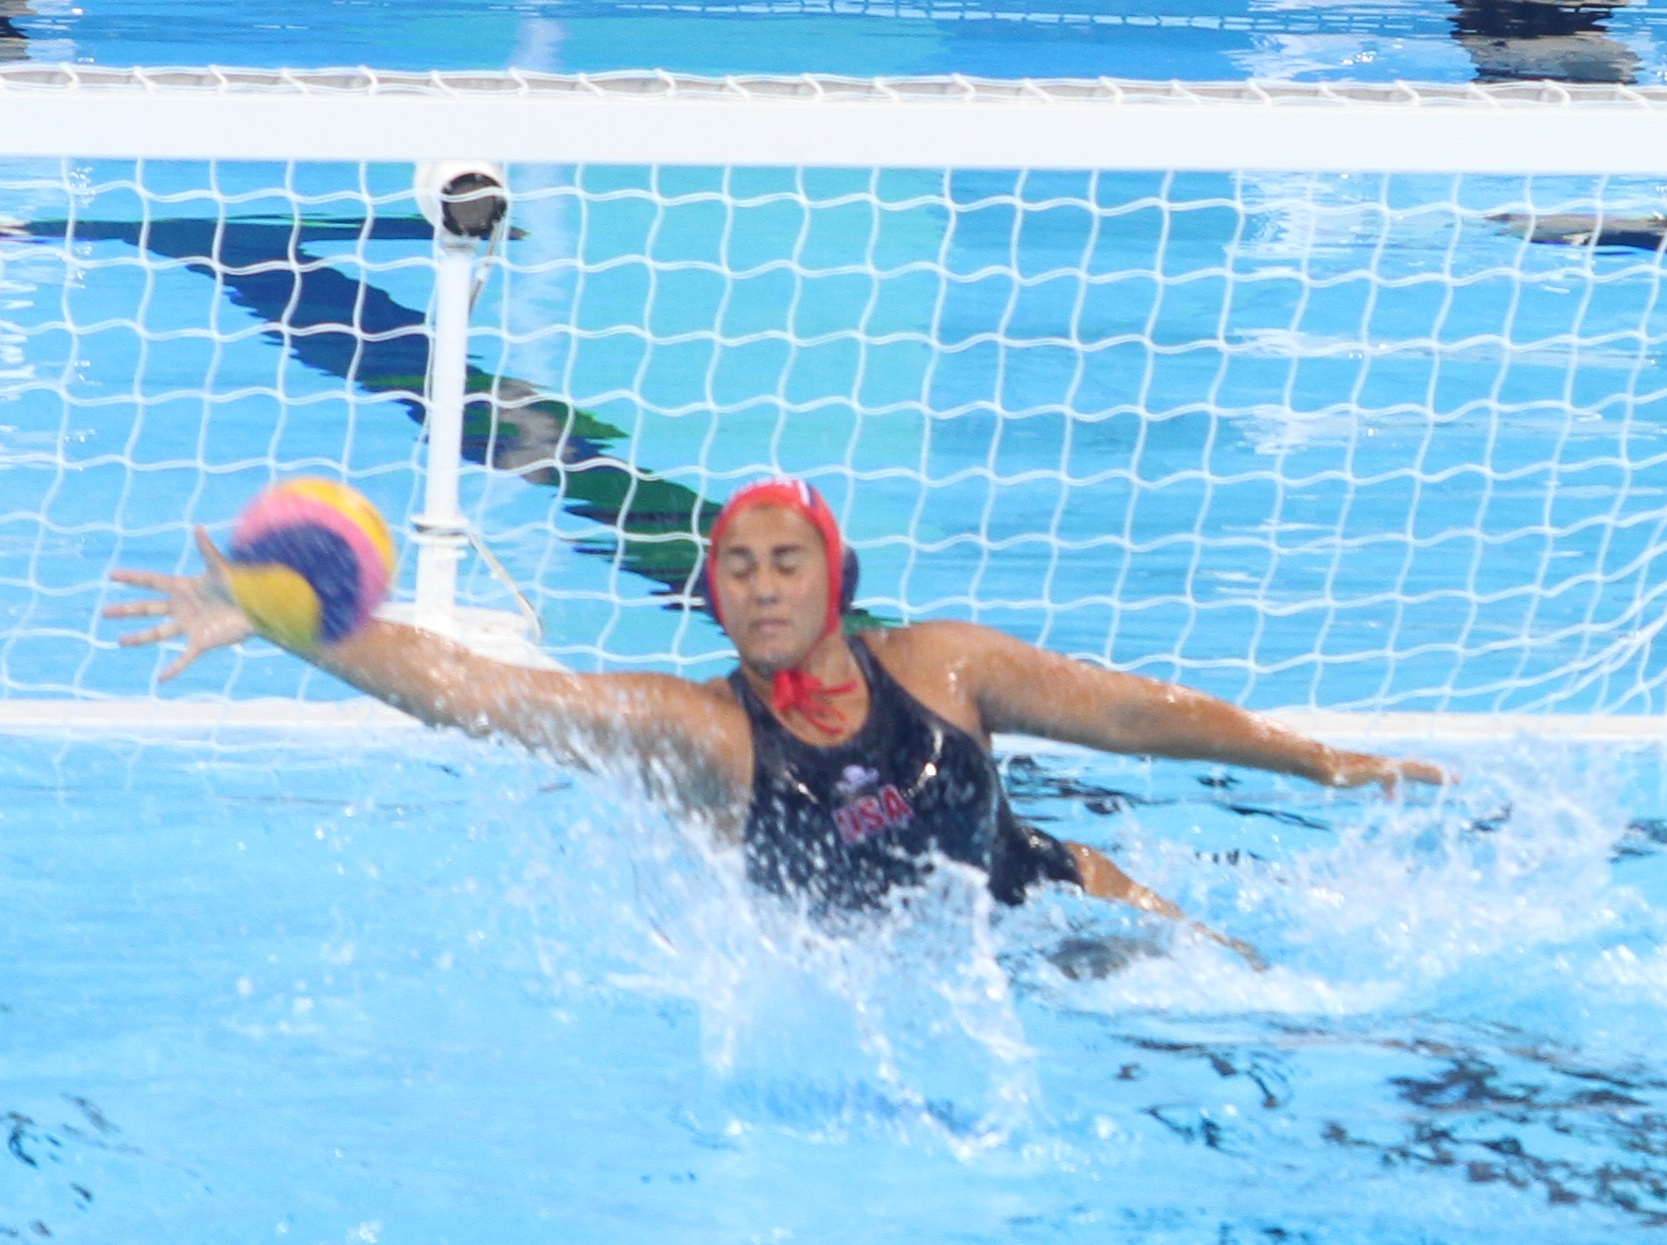 Sami Hill makes a save during game at the Rio Olympics. Hill, a Dos Pueblos graduate, won a gold medal with Team USA